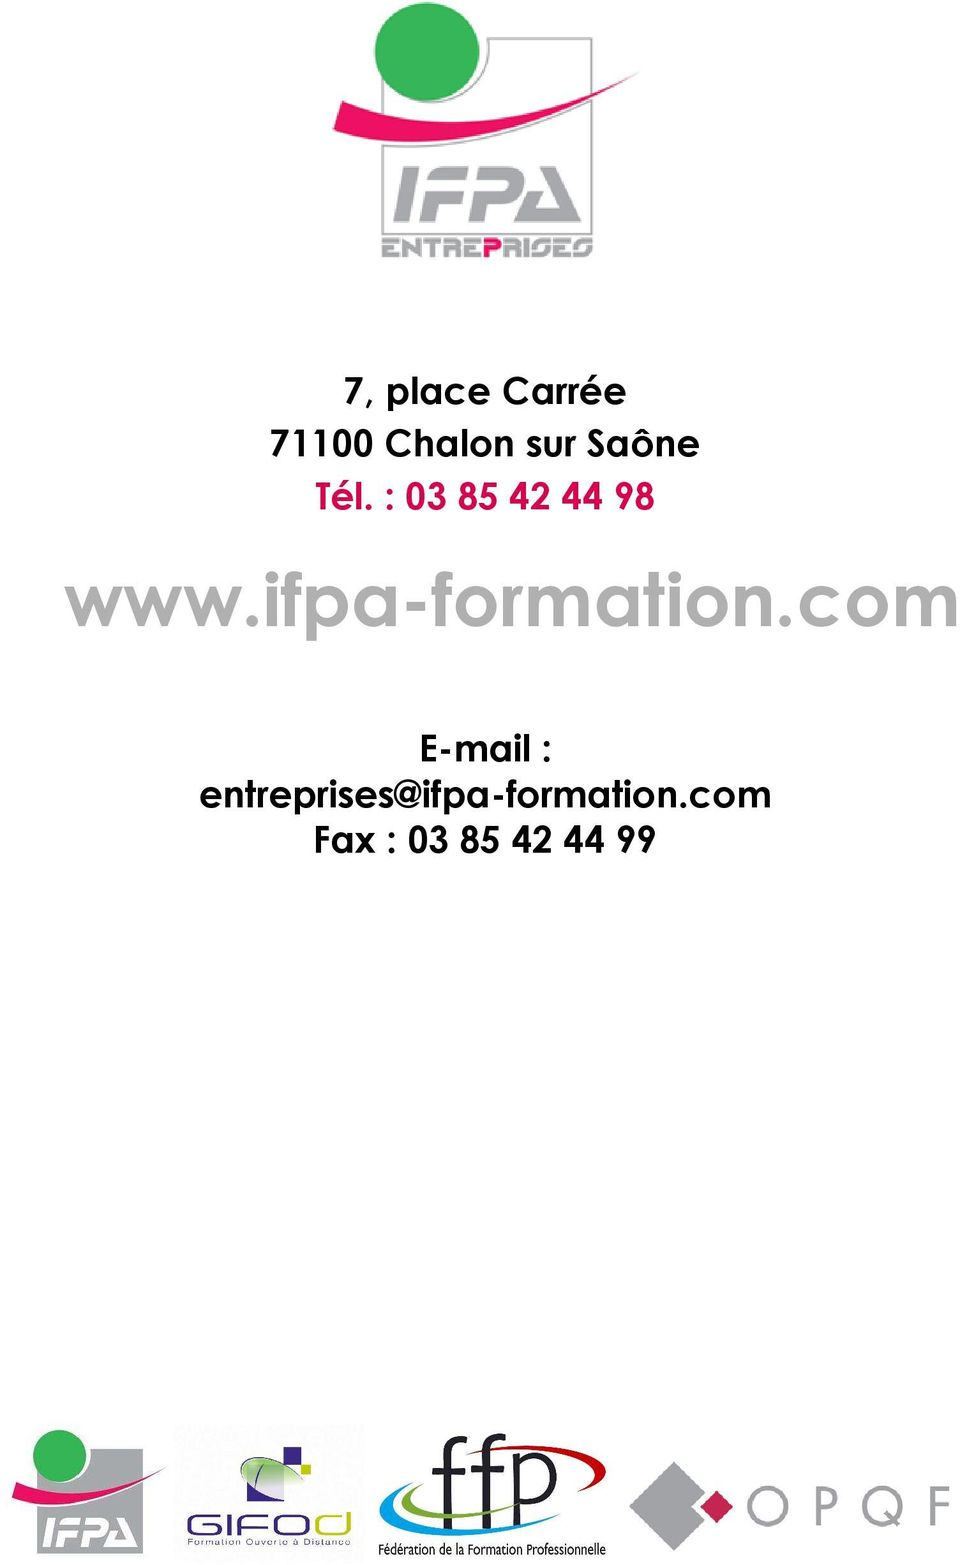 ifpa-formation.